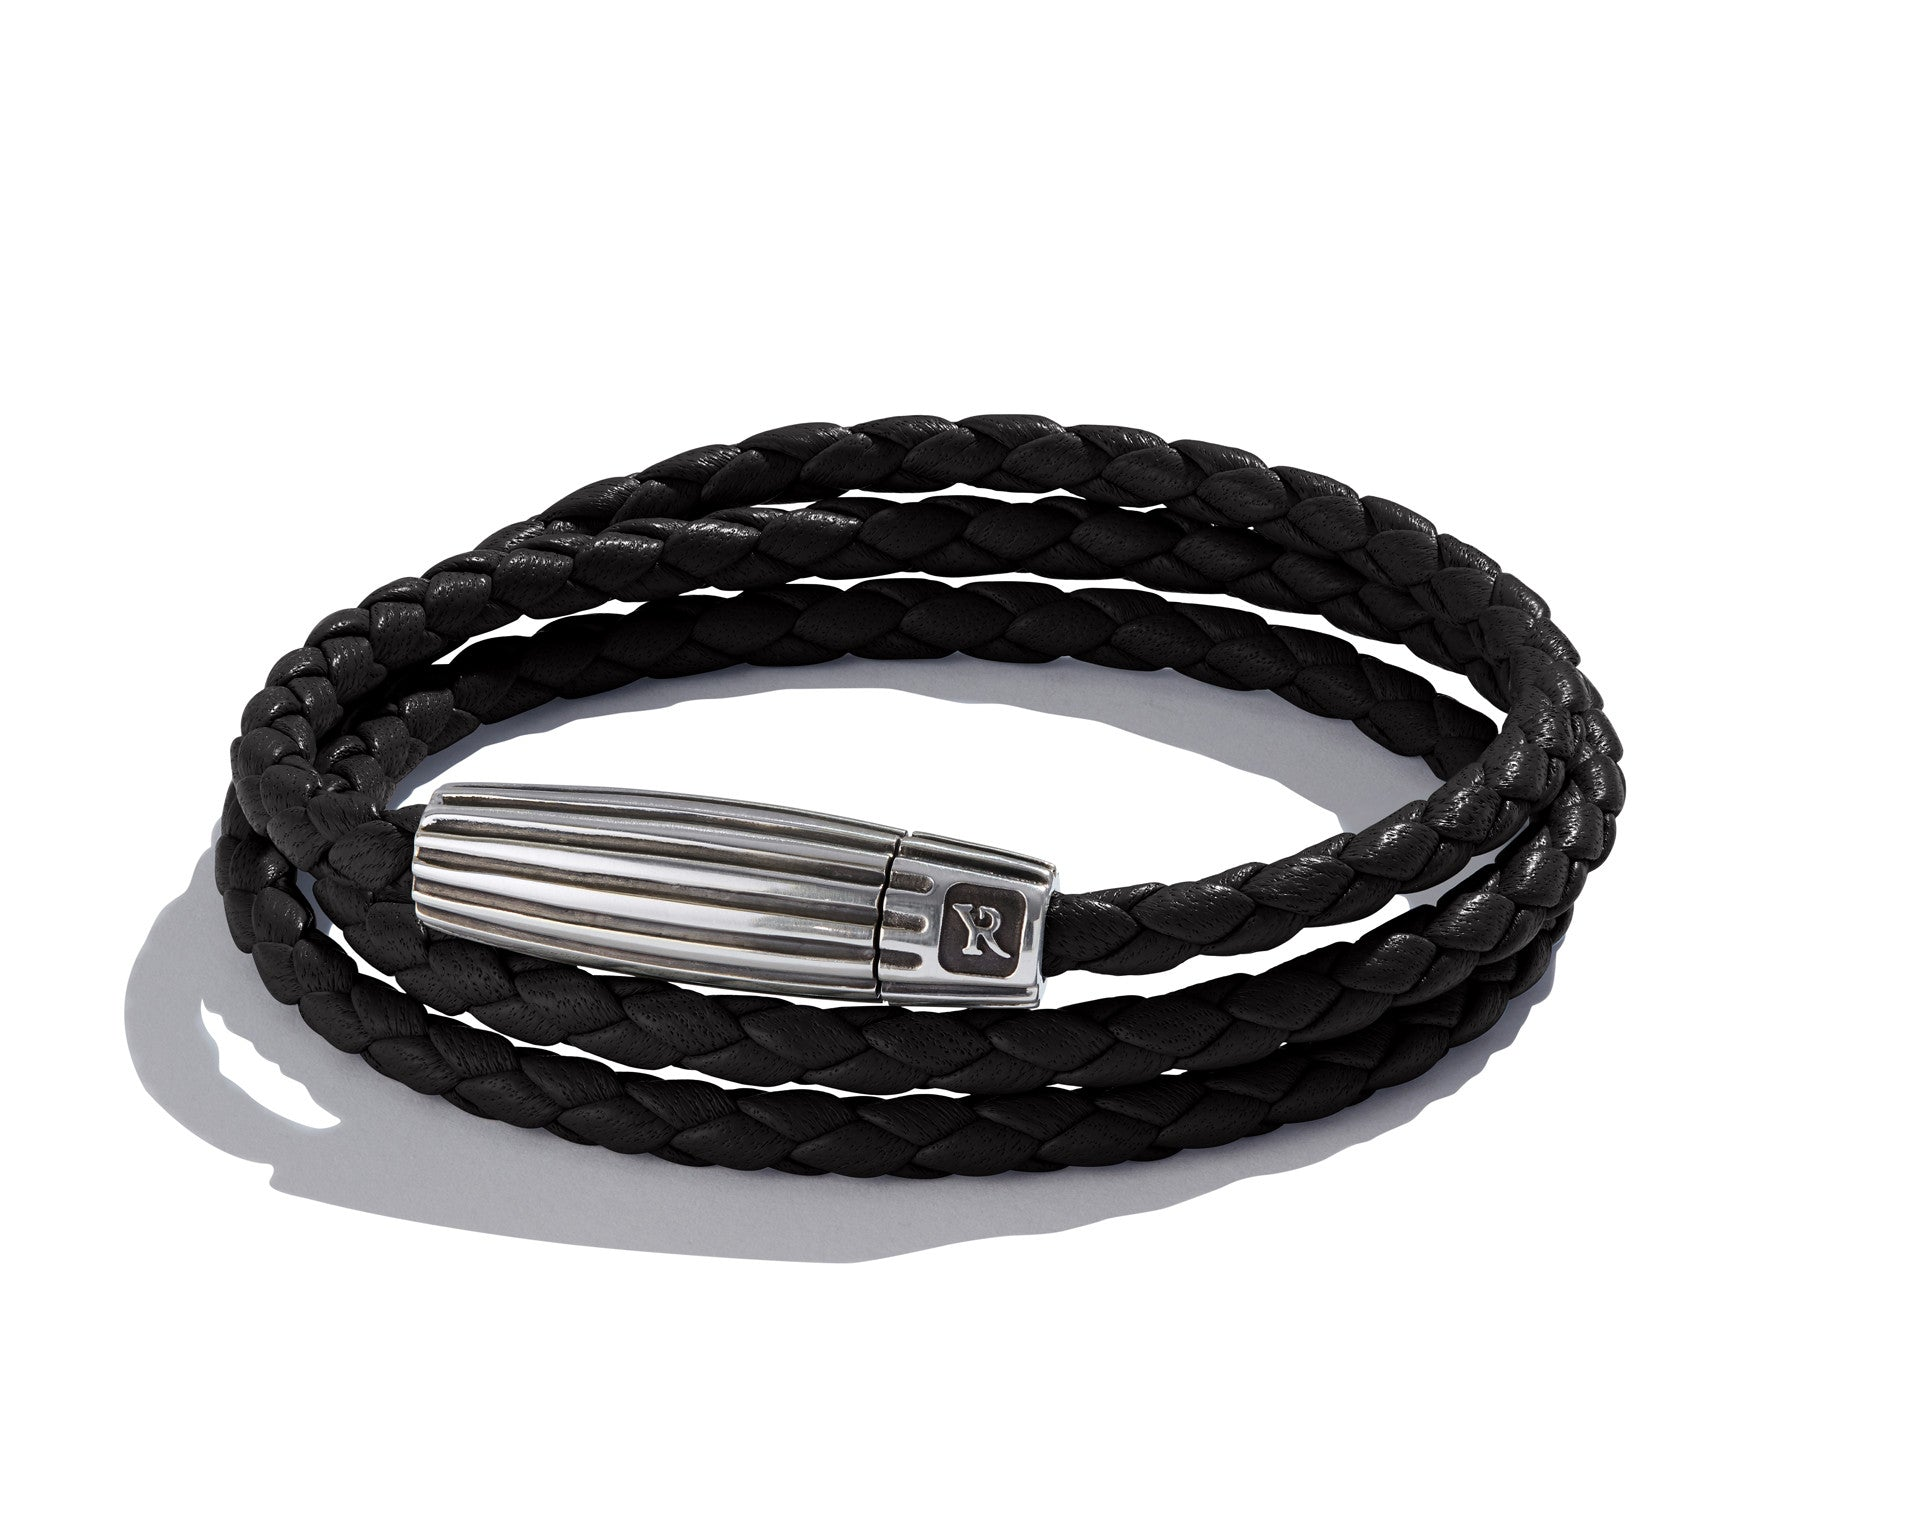 sidai wht triple products bracelet nomas brclt endito wrap collection turq terra